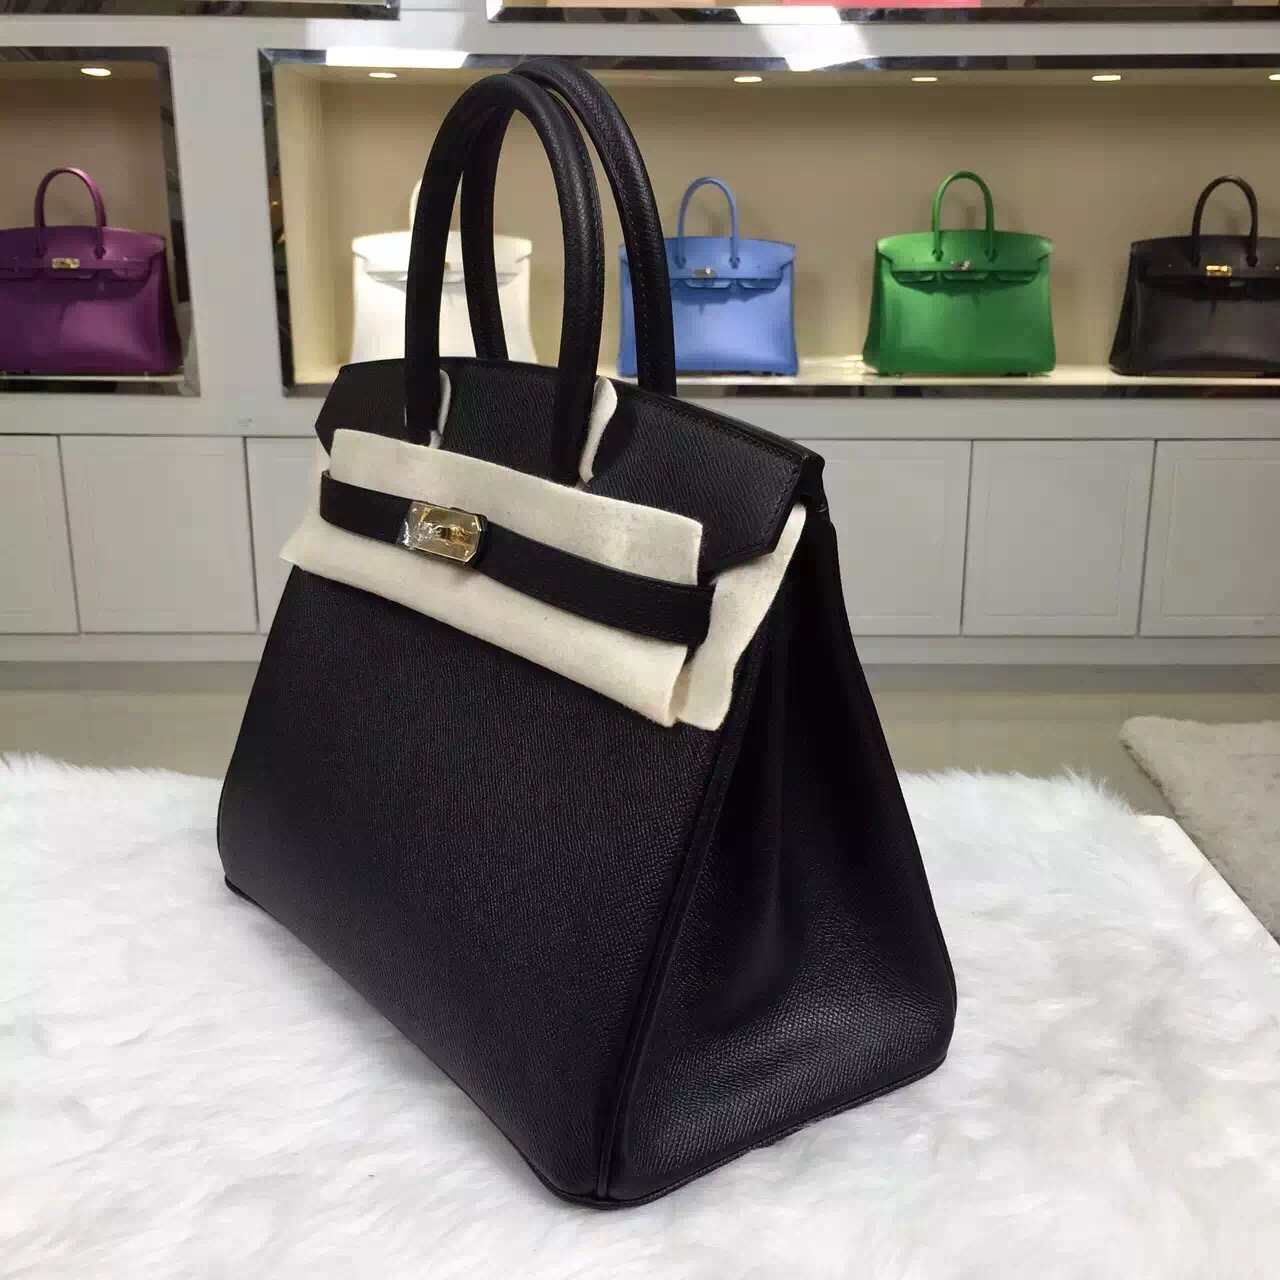 Discount Hermes Black Epsom Leather Birkin Bag 30cm Elegant Women's Tote Bag